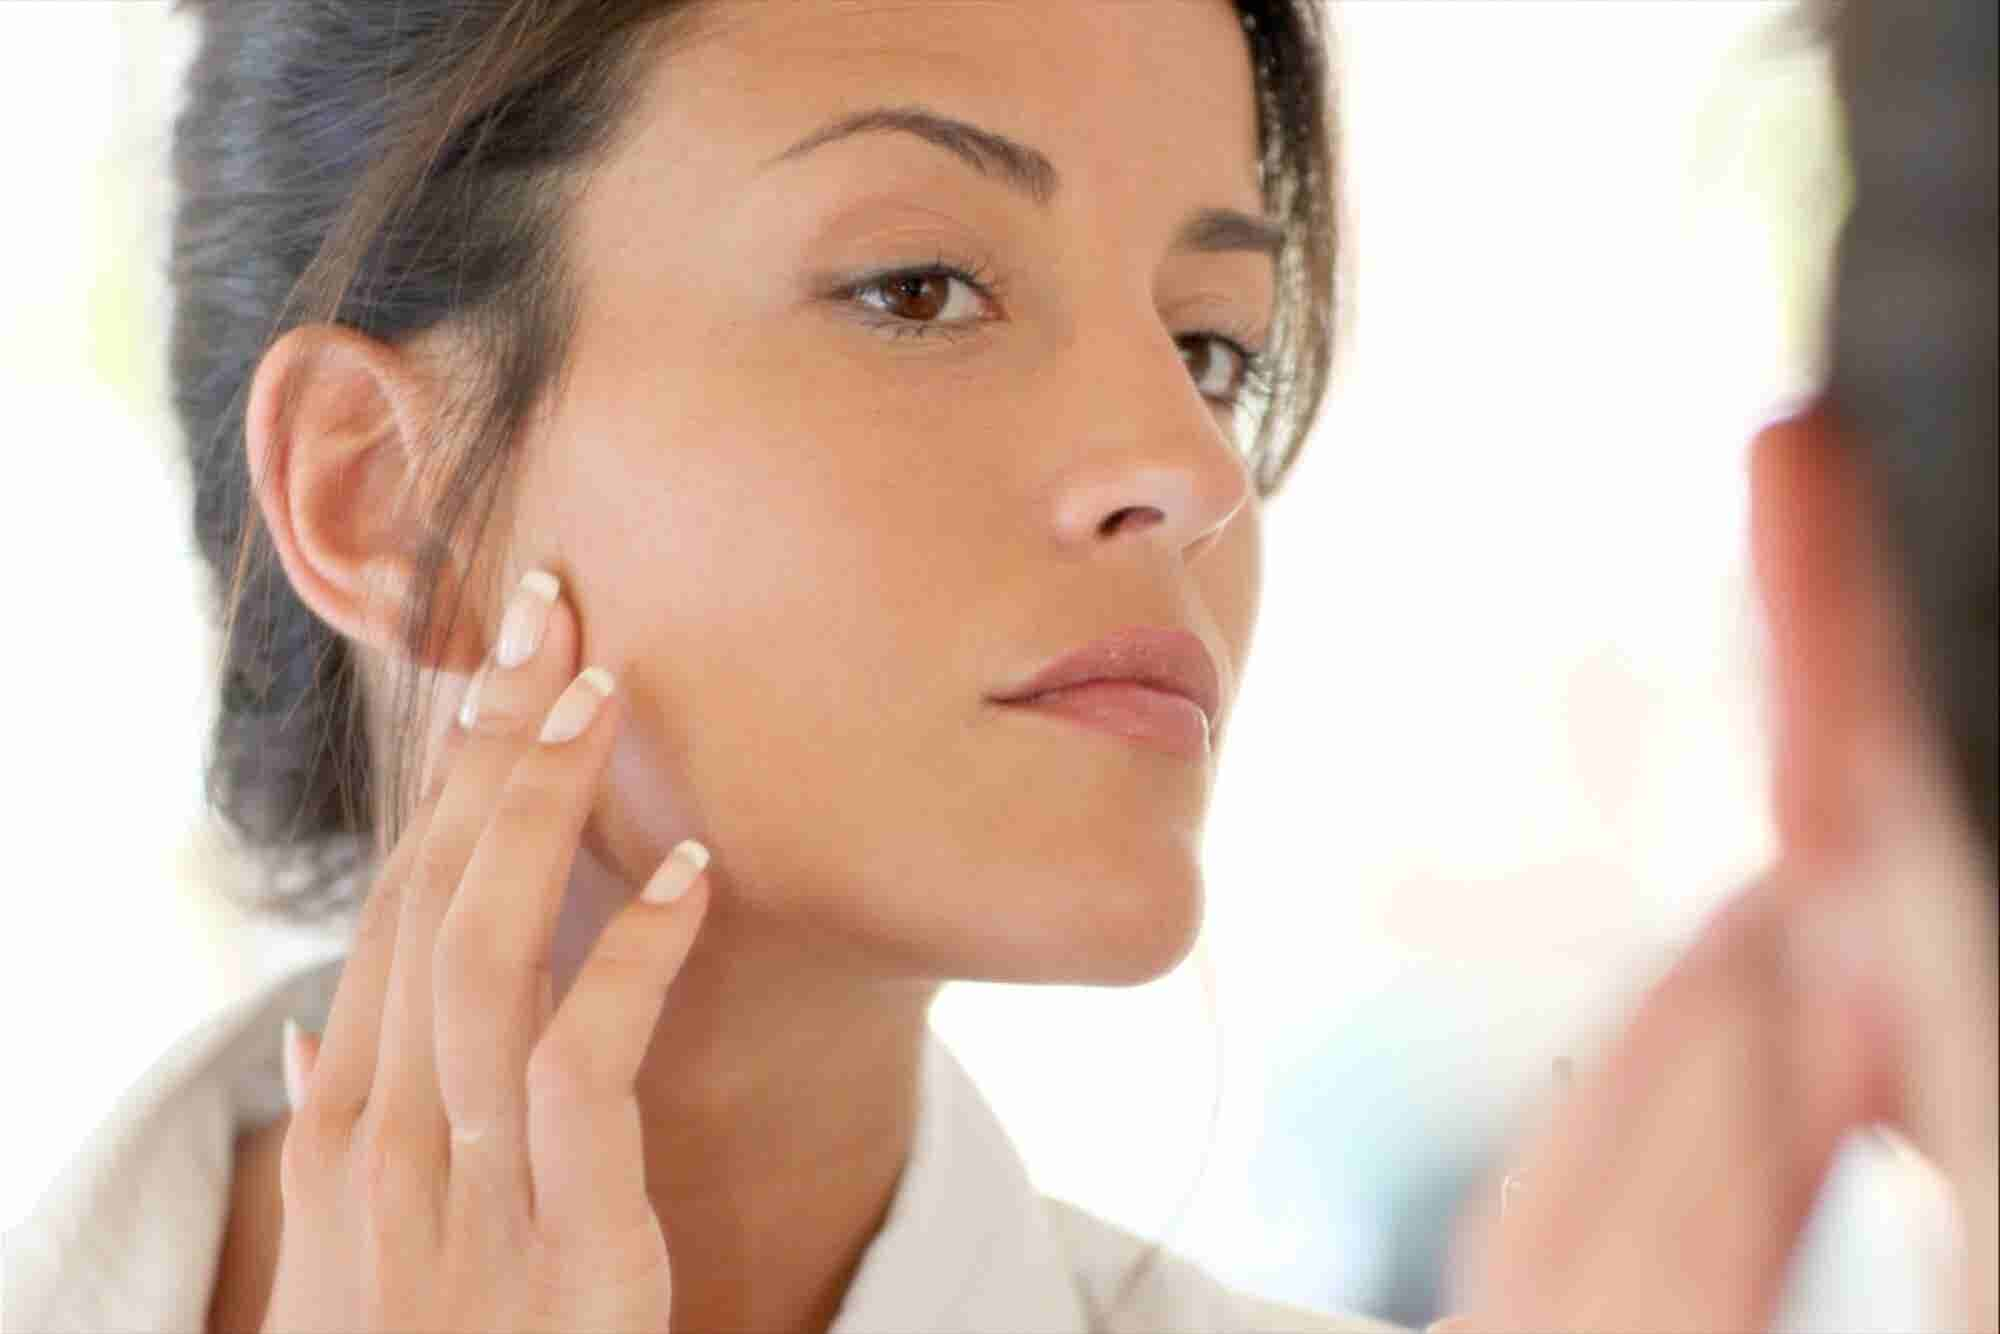 Are We 5 Years Away From Being Able to Reverse Aging?